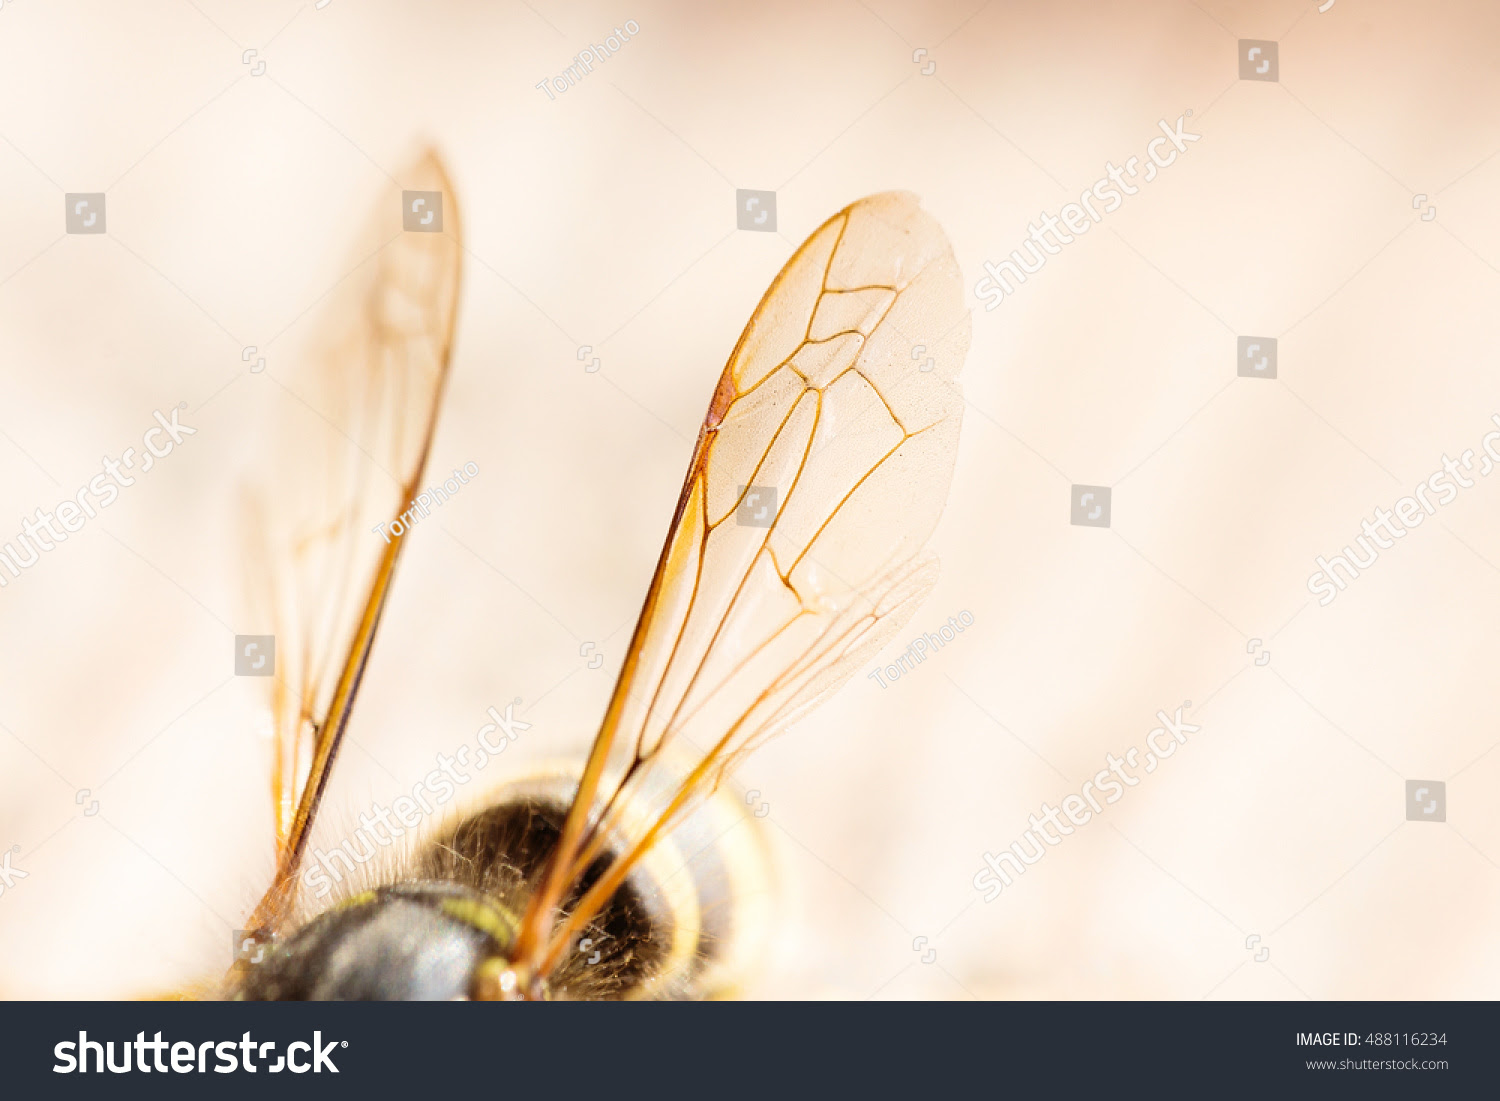 Closeup wasp wings. Insect background with copy space